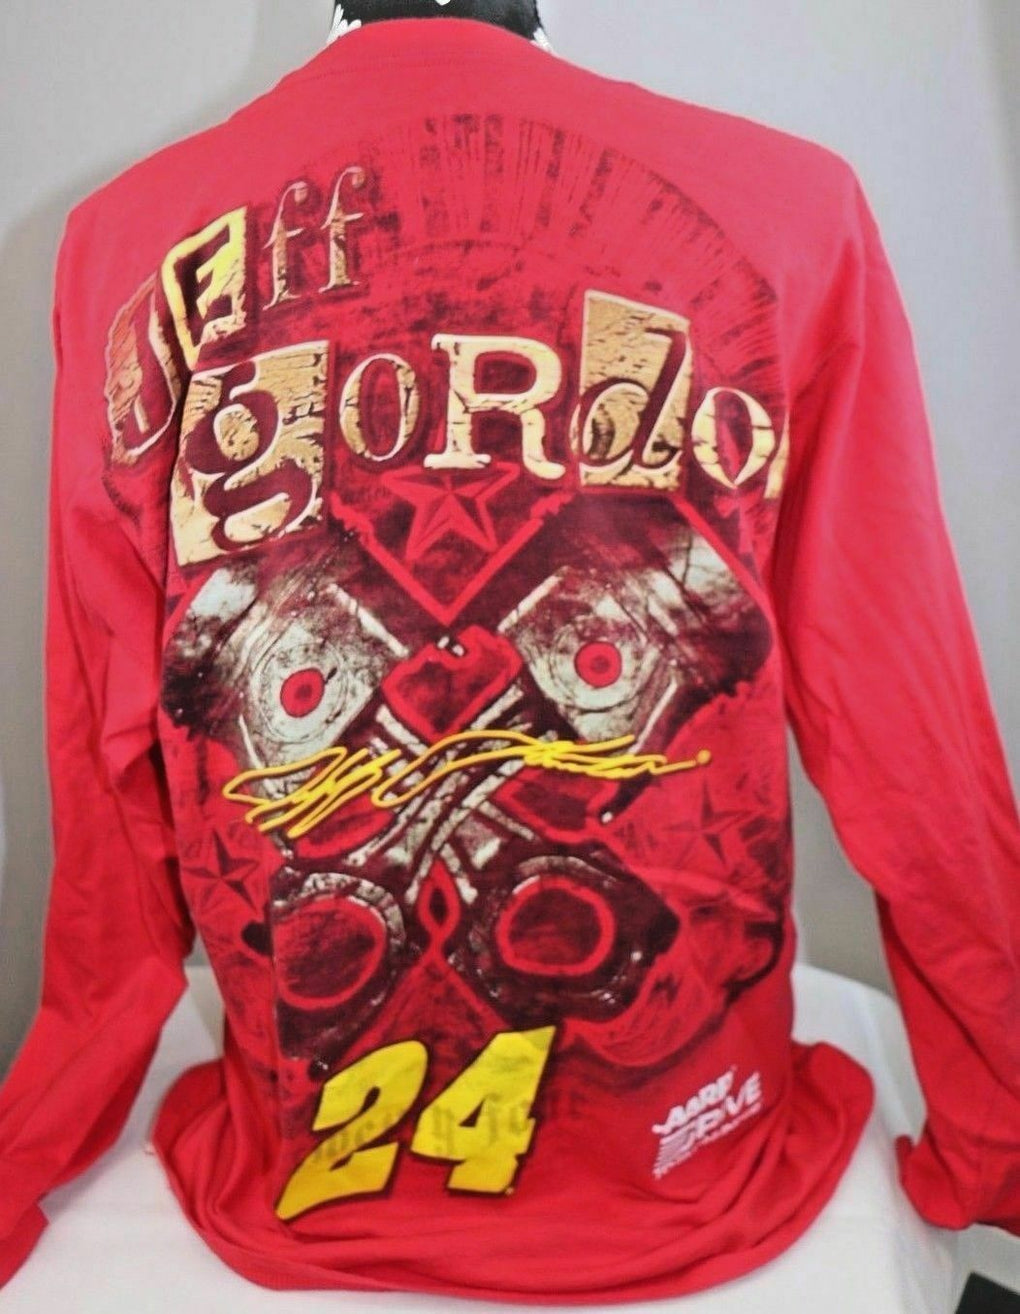 Jeff Gordon Chase Authentics 24 Red Long Sleeve Graphic Shirt 2Sided NASCAR L - Fazoom